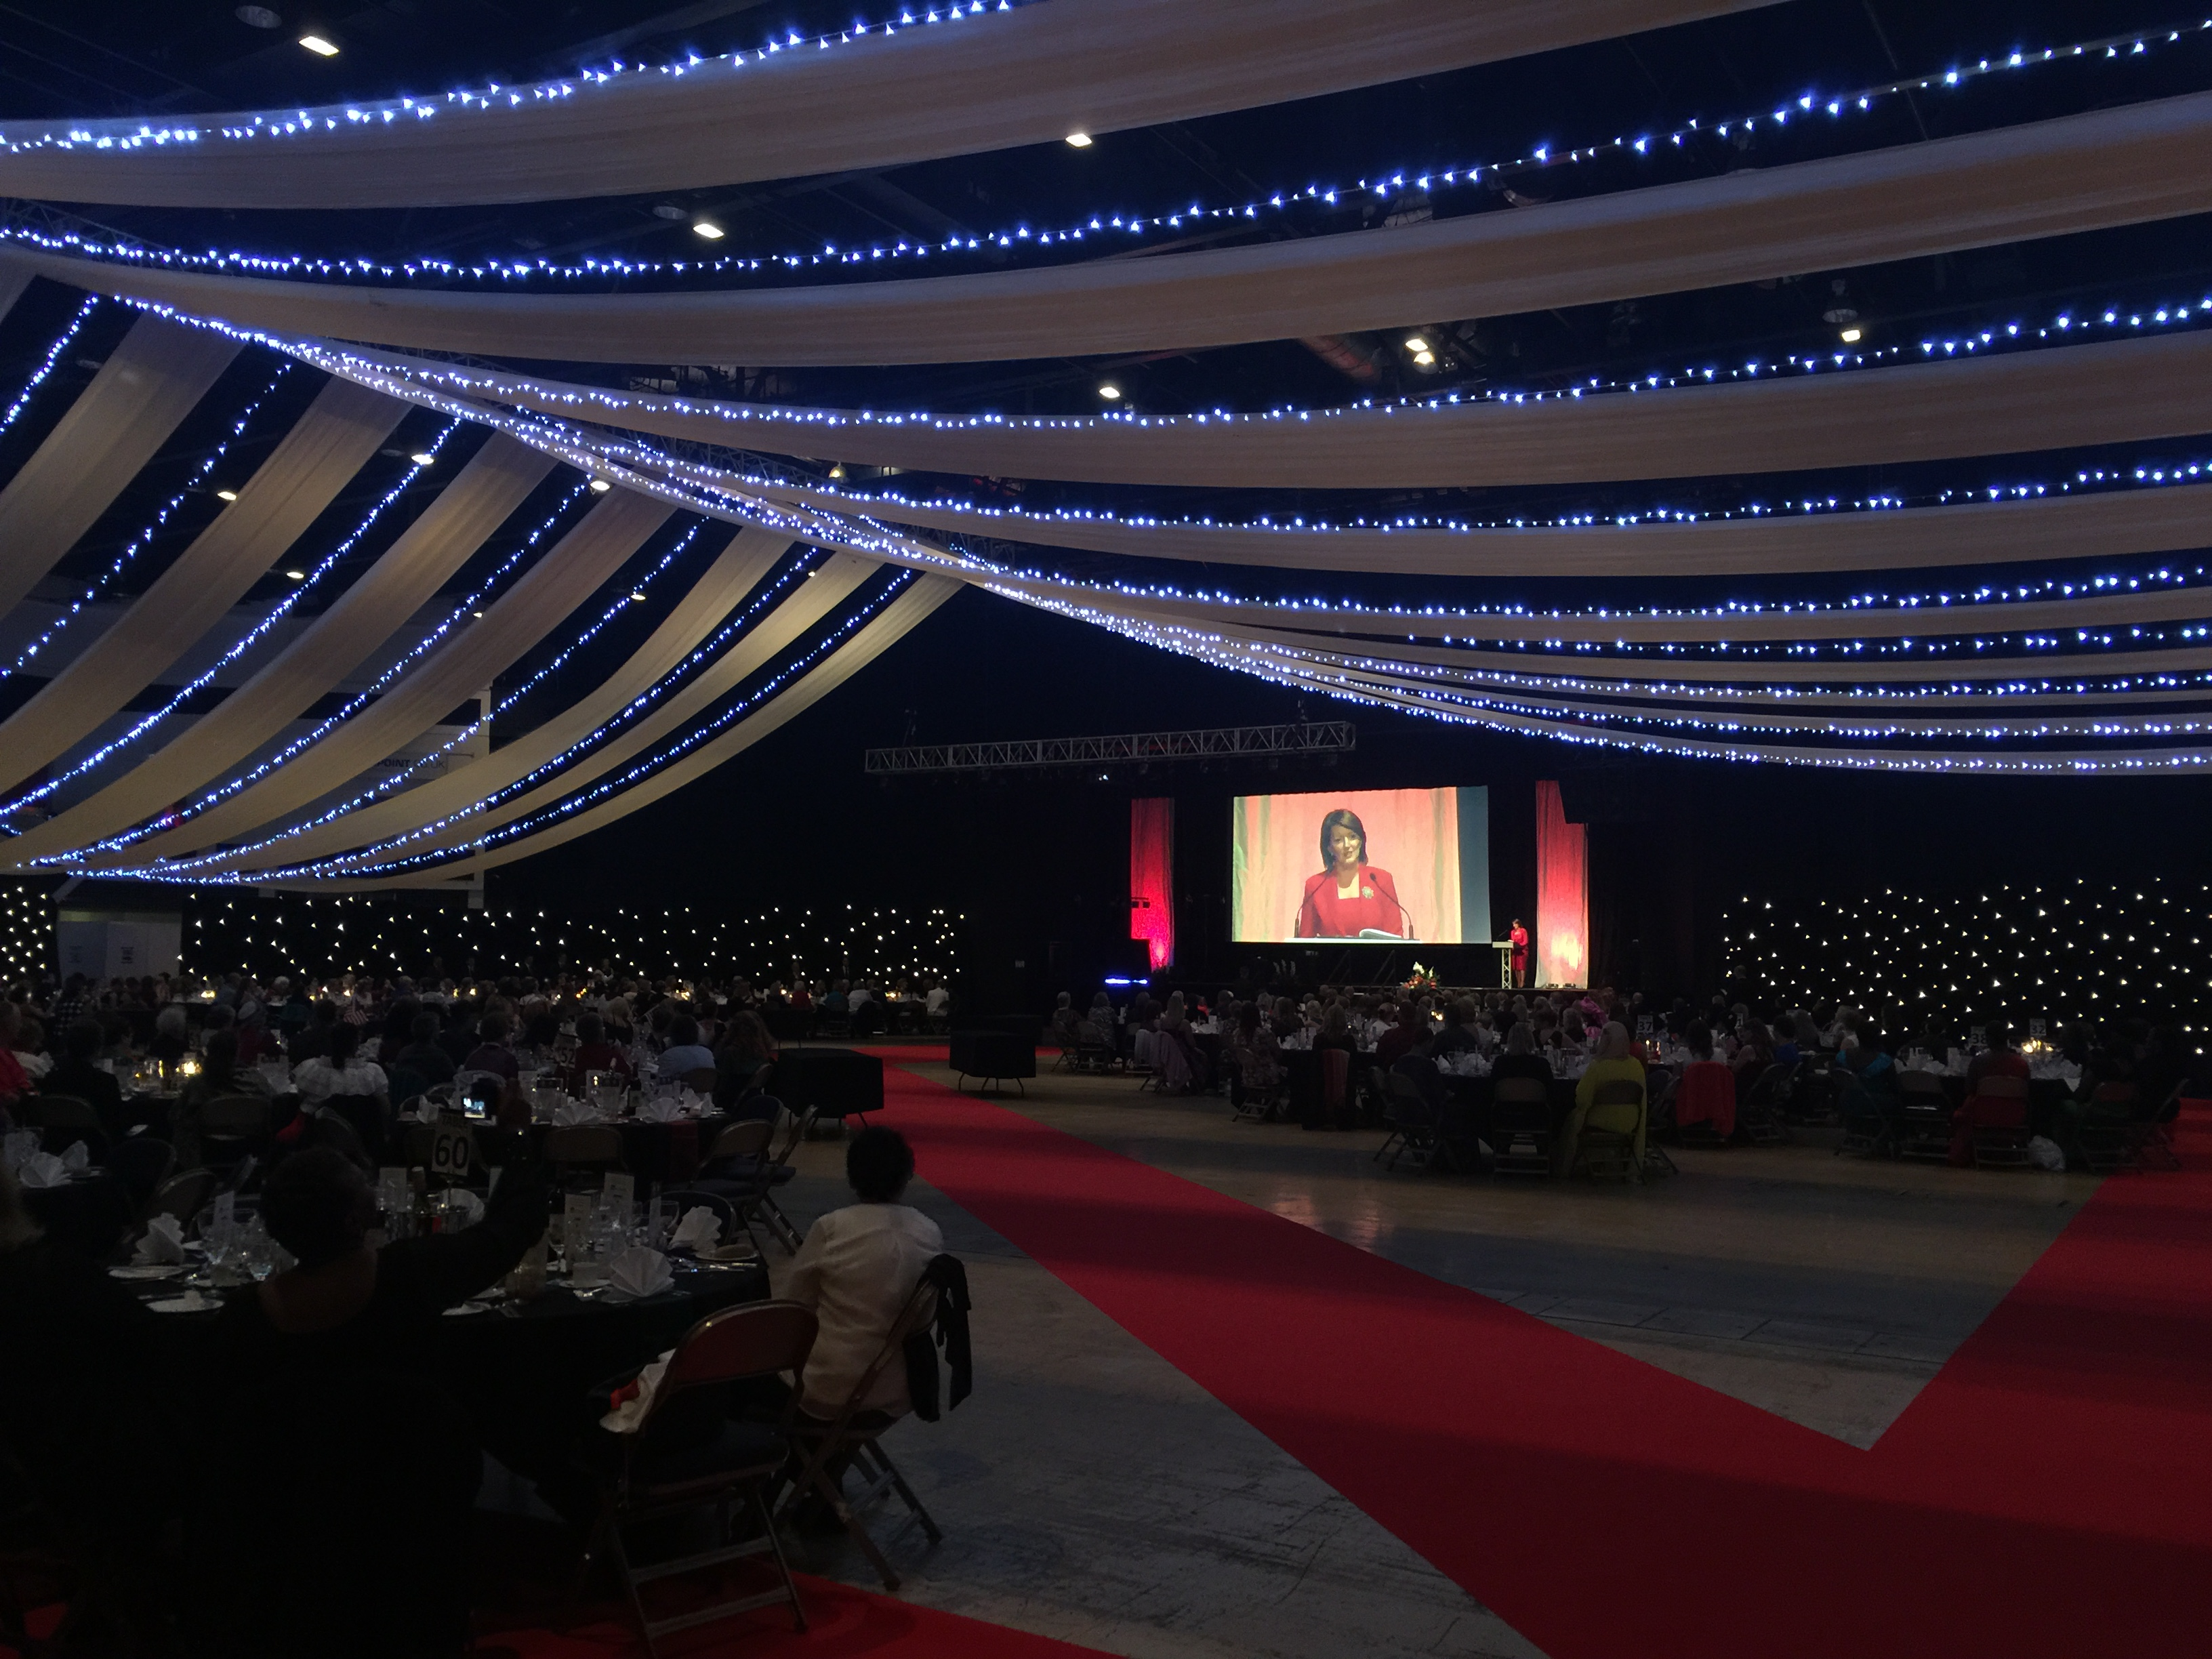 Roof draping and Large Screen Dinner